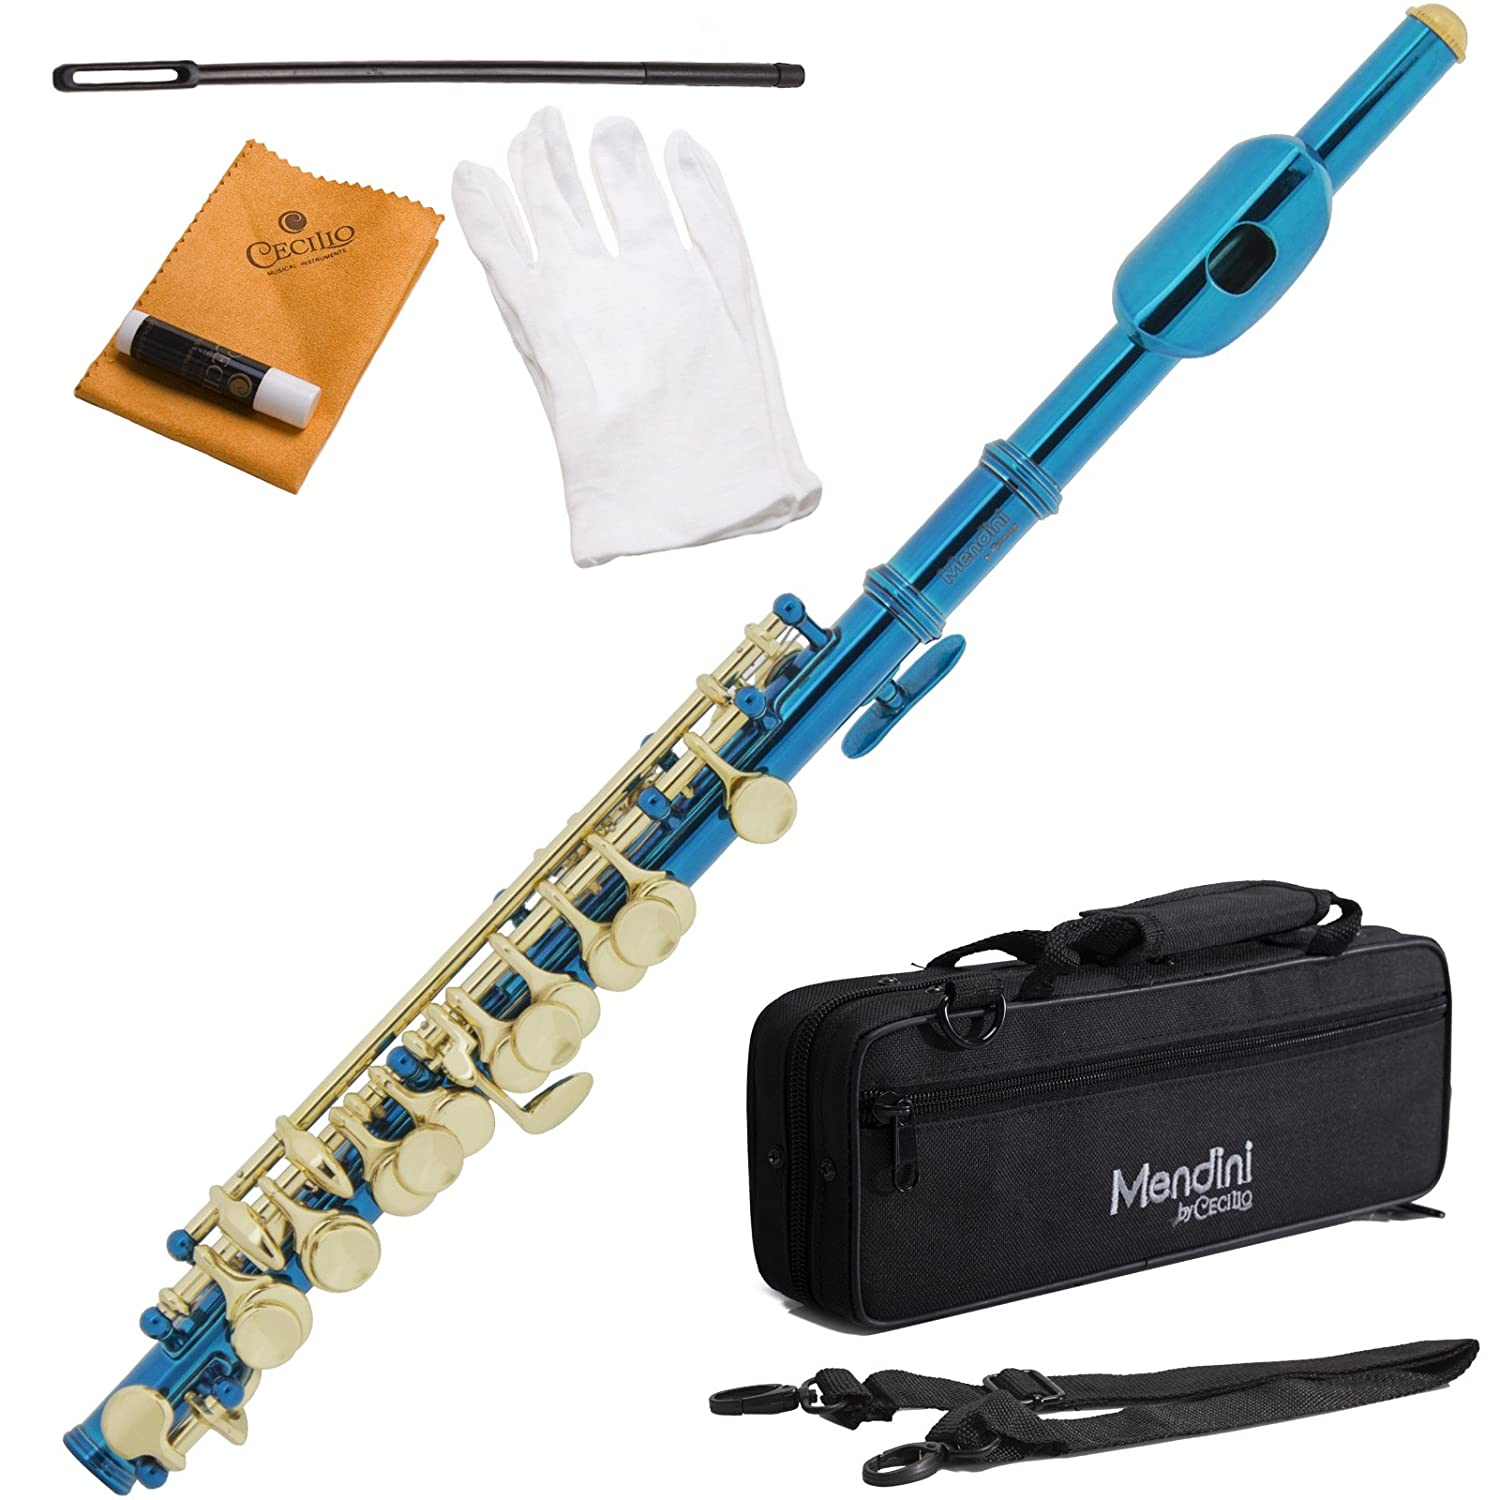 Mendini MPO-BN Black Nickel Key of C Piccolo with Gold Keys + Case, Joint Grease, Cleaning Cloth & Rod, Gloves Cecilio Musical Instruments MPO-BK